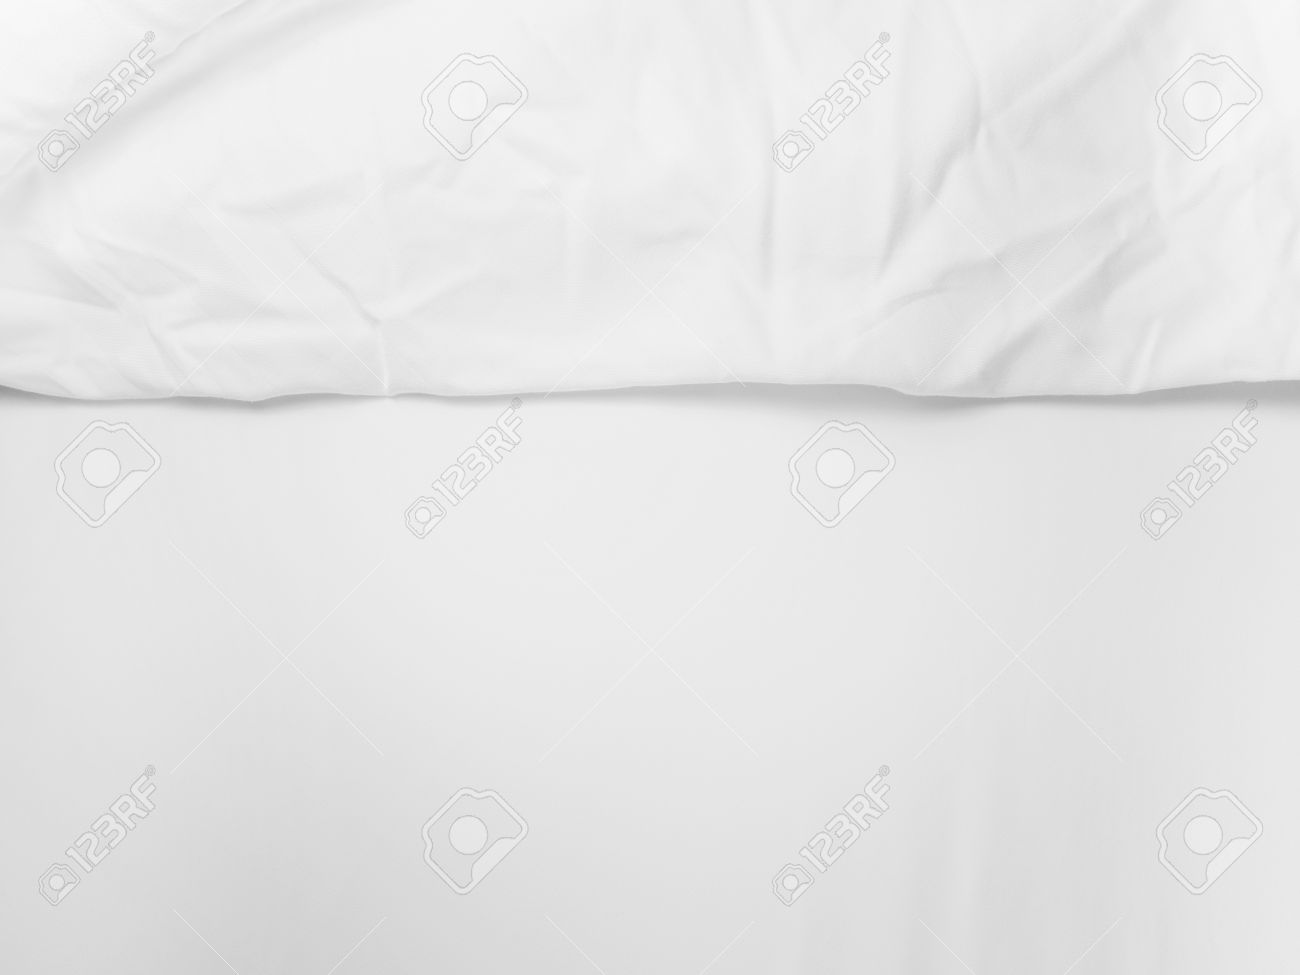 White bed sheet background - Soft White Bed Sheets For Background Stock Photo 48390111